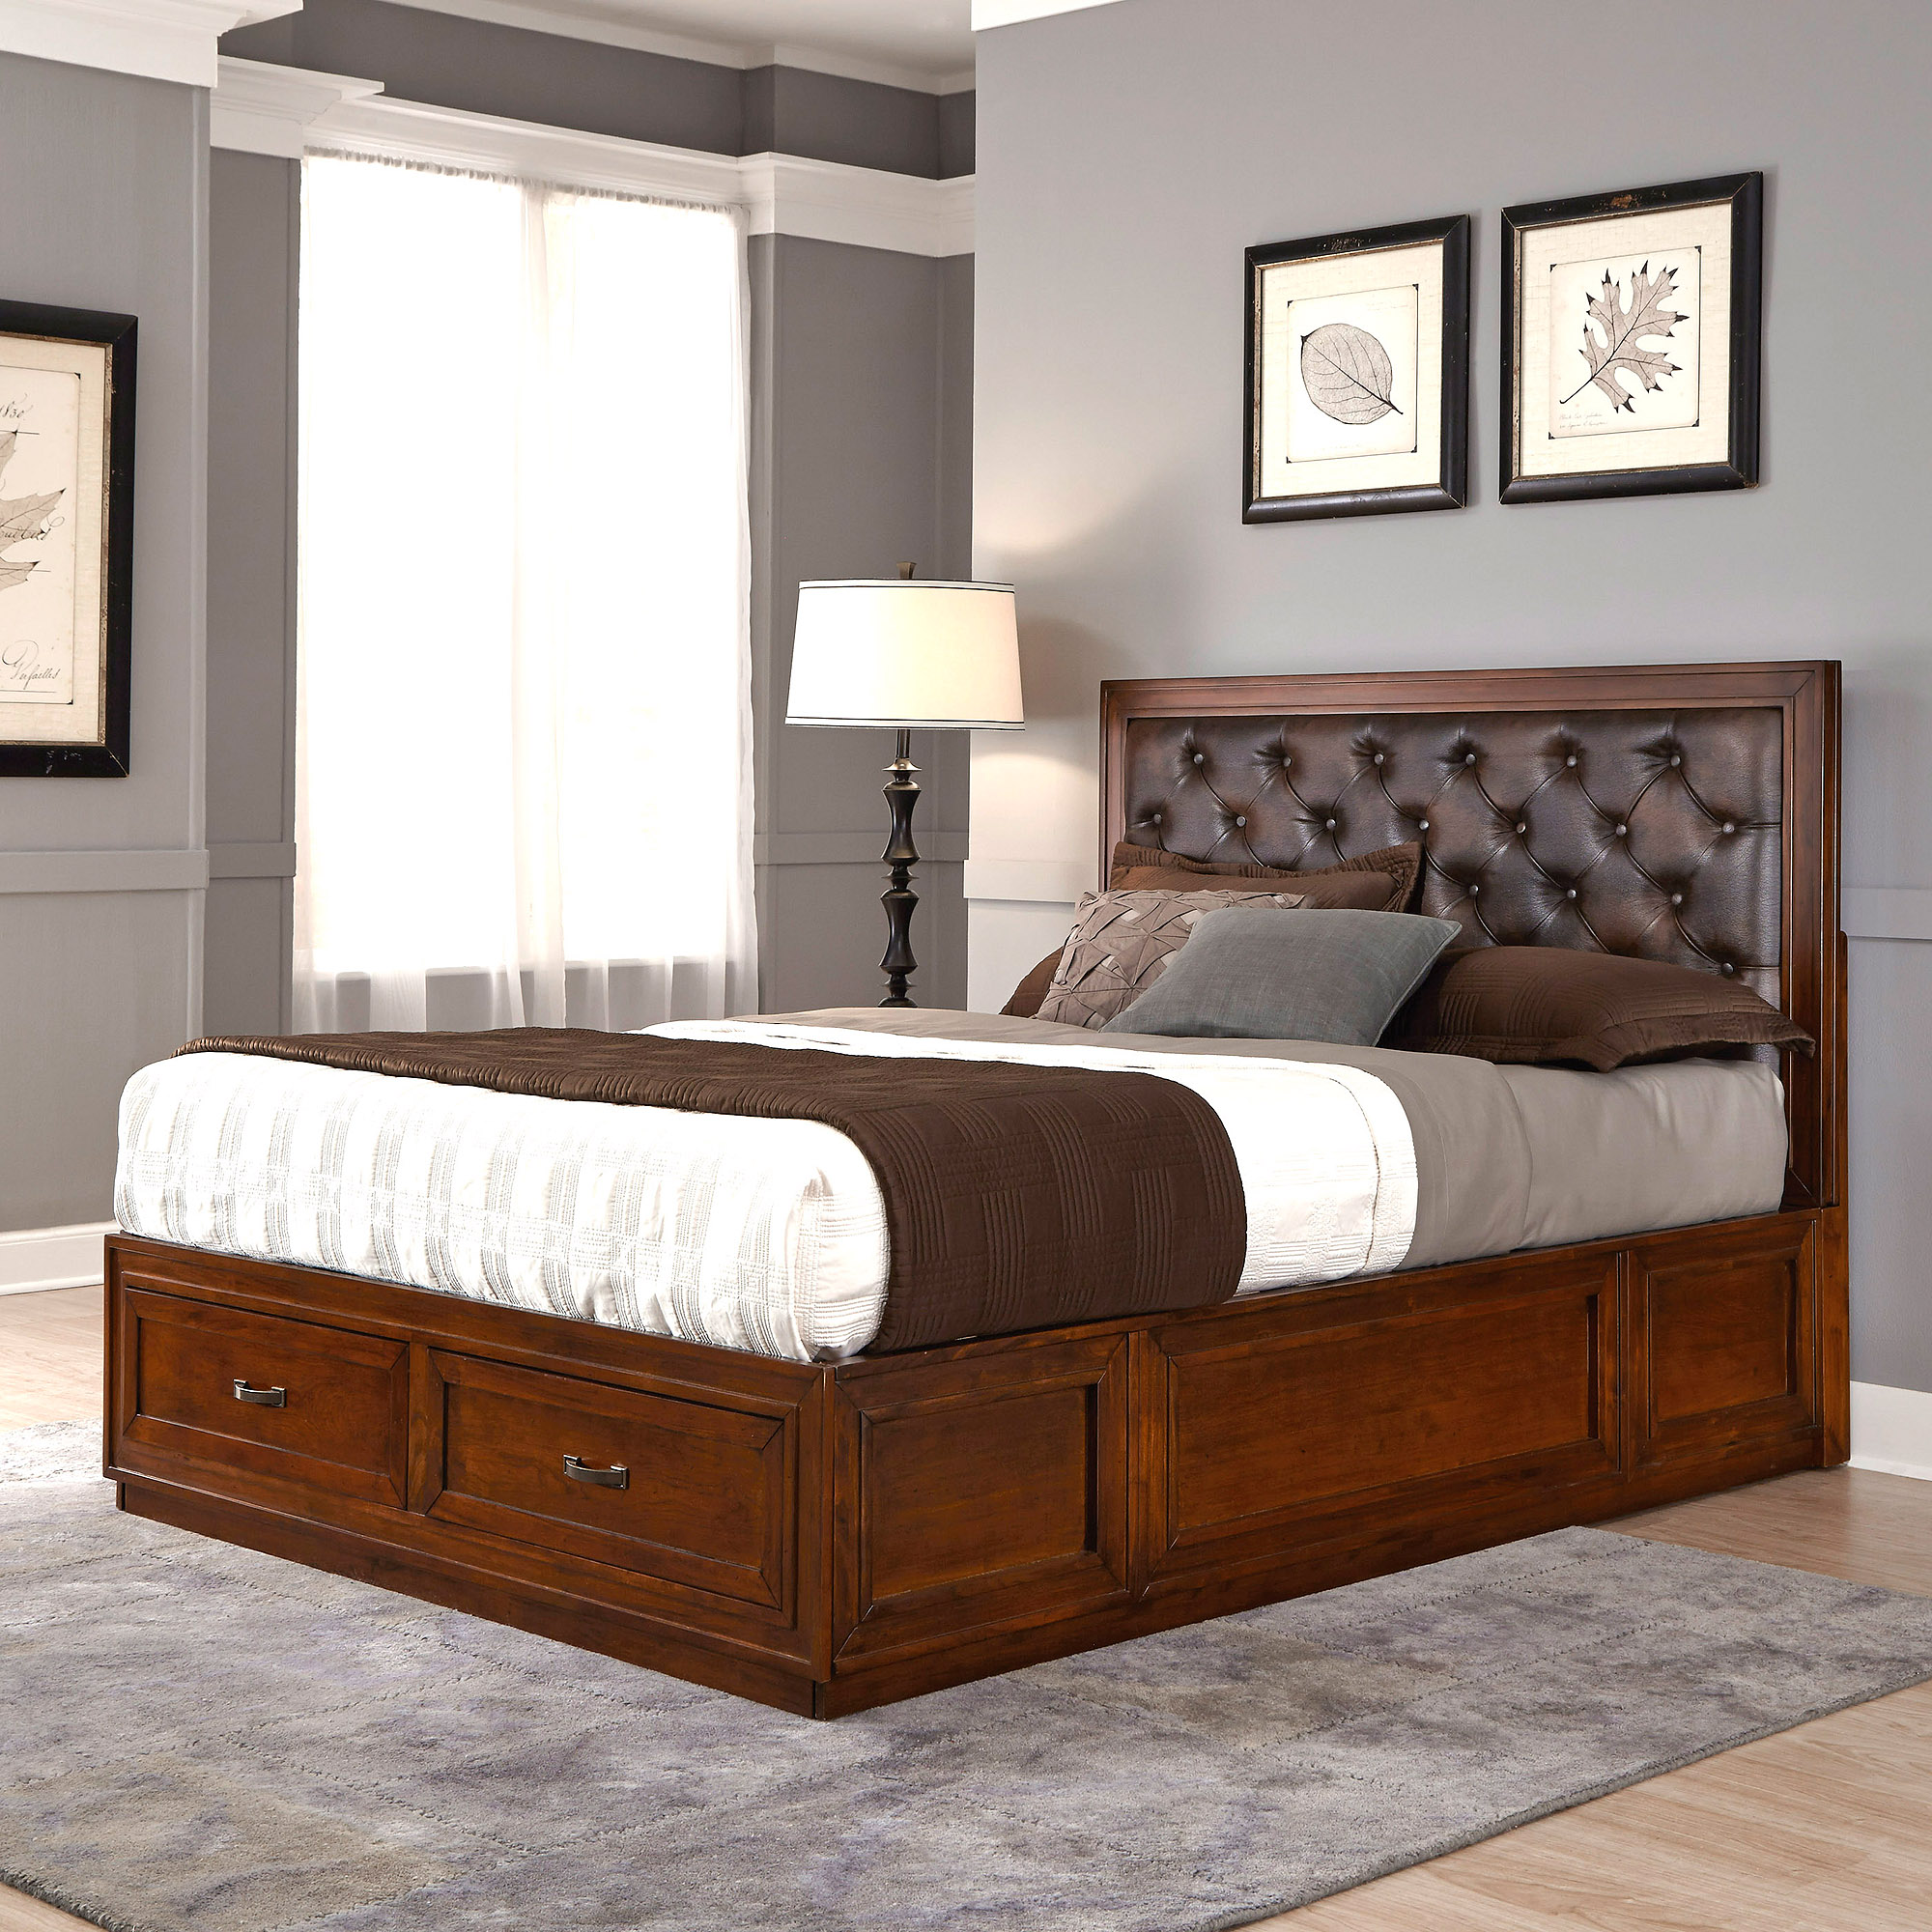 Duet Queen Tufted Diamond Panel Bed, Brown Leather